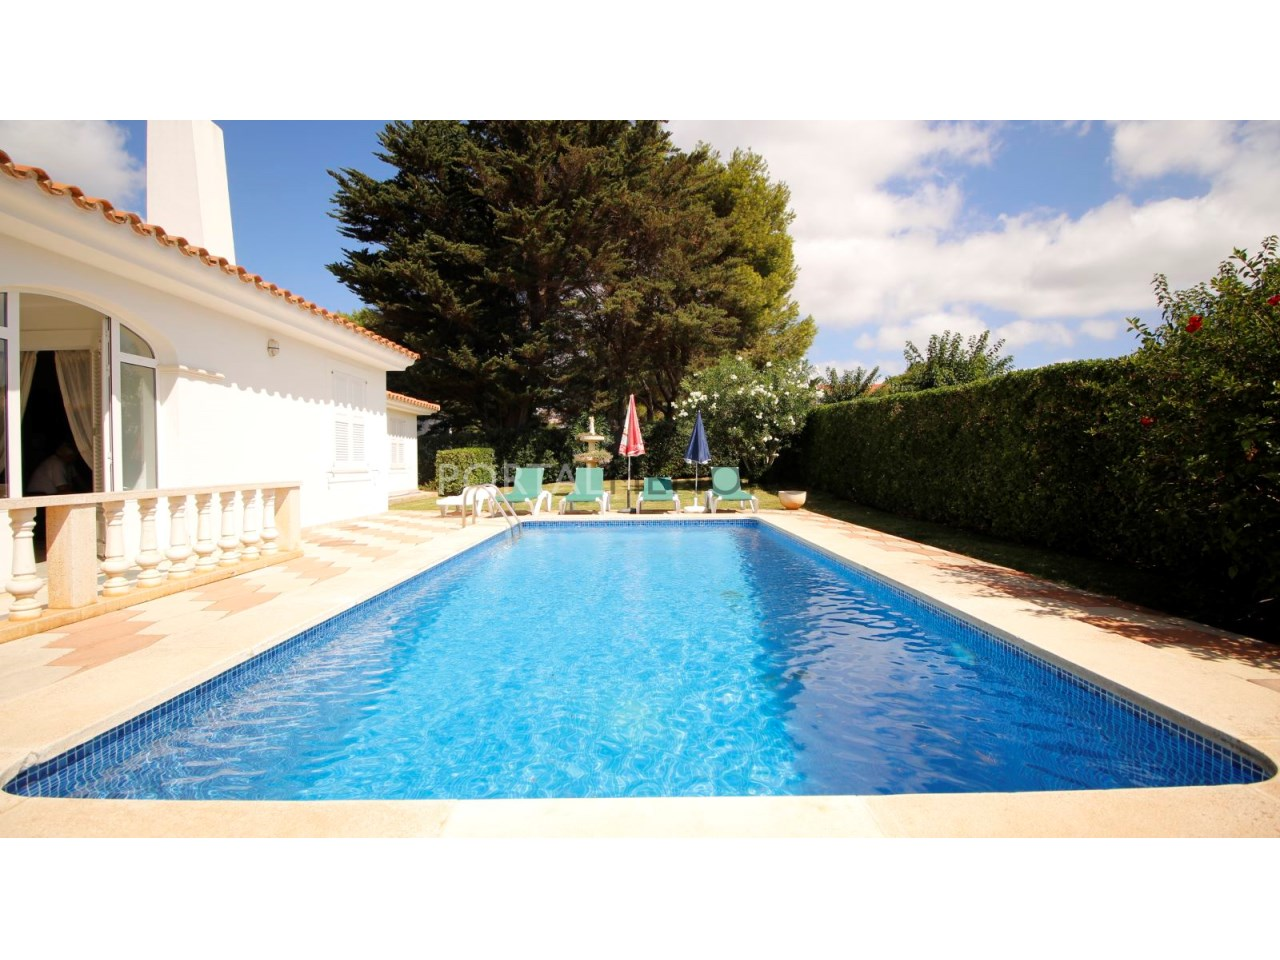 Villa with swimming pool for sale in Binibeca